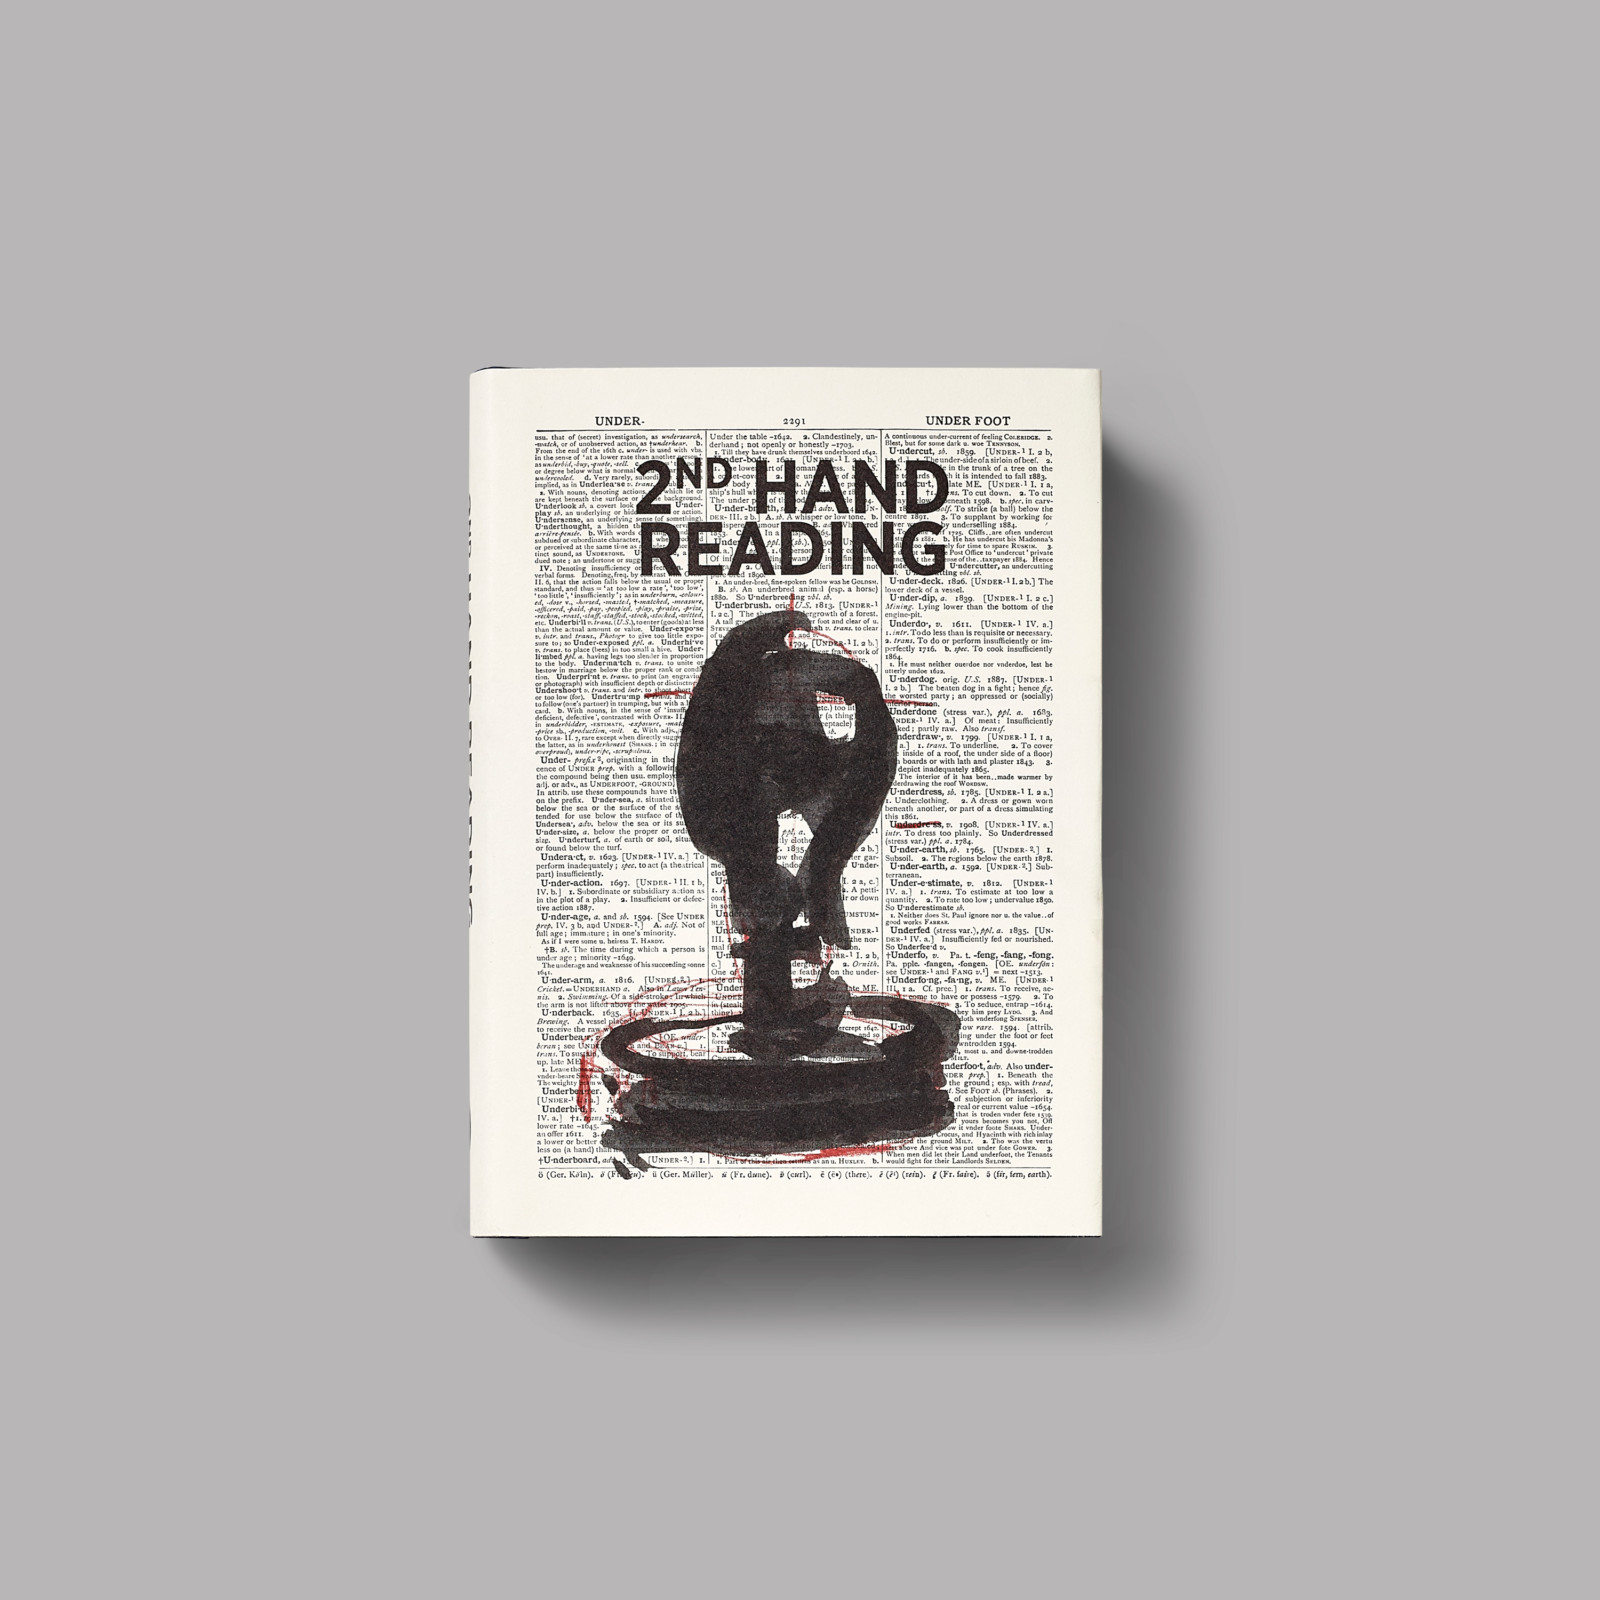 2nd_hand_reading_head